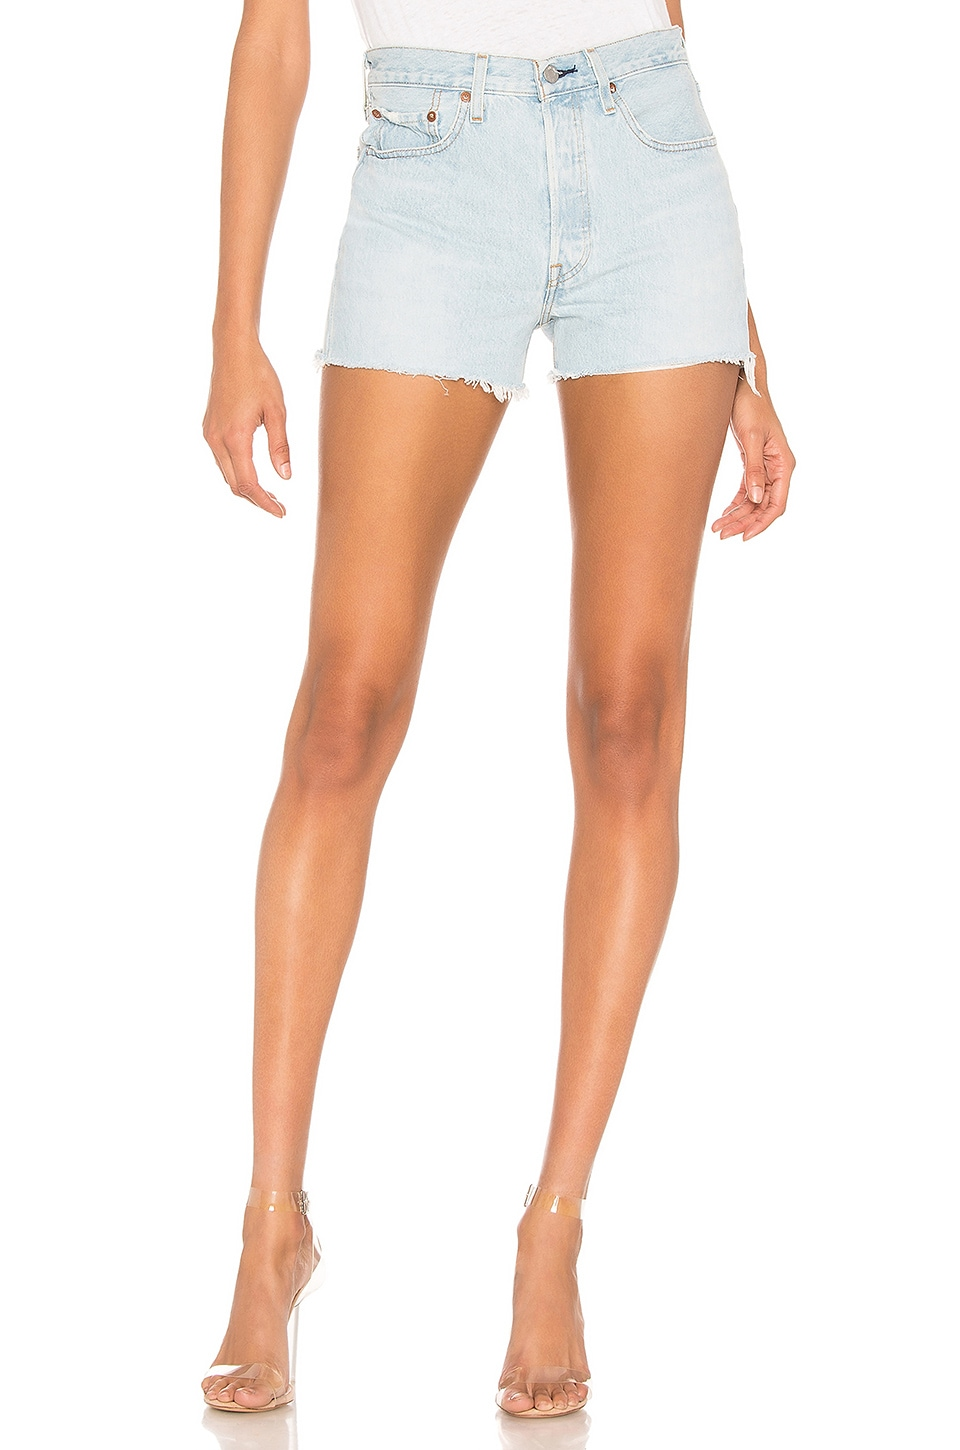 LEVI'S 501 High Rise Short in Weak in the Knees